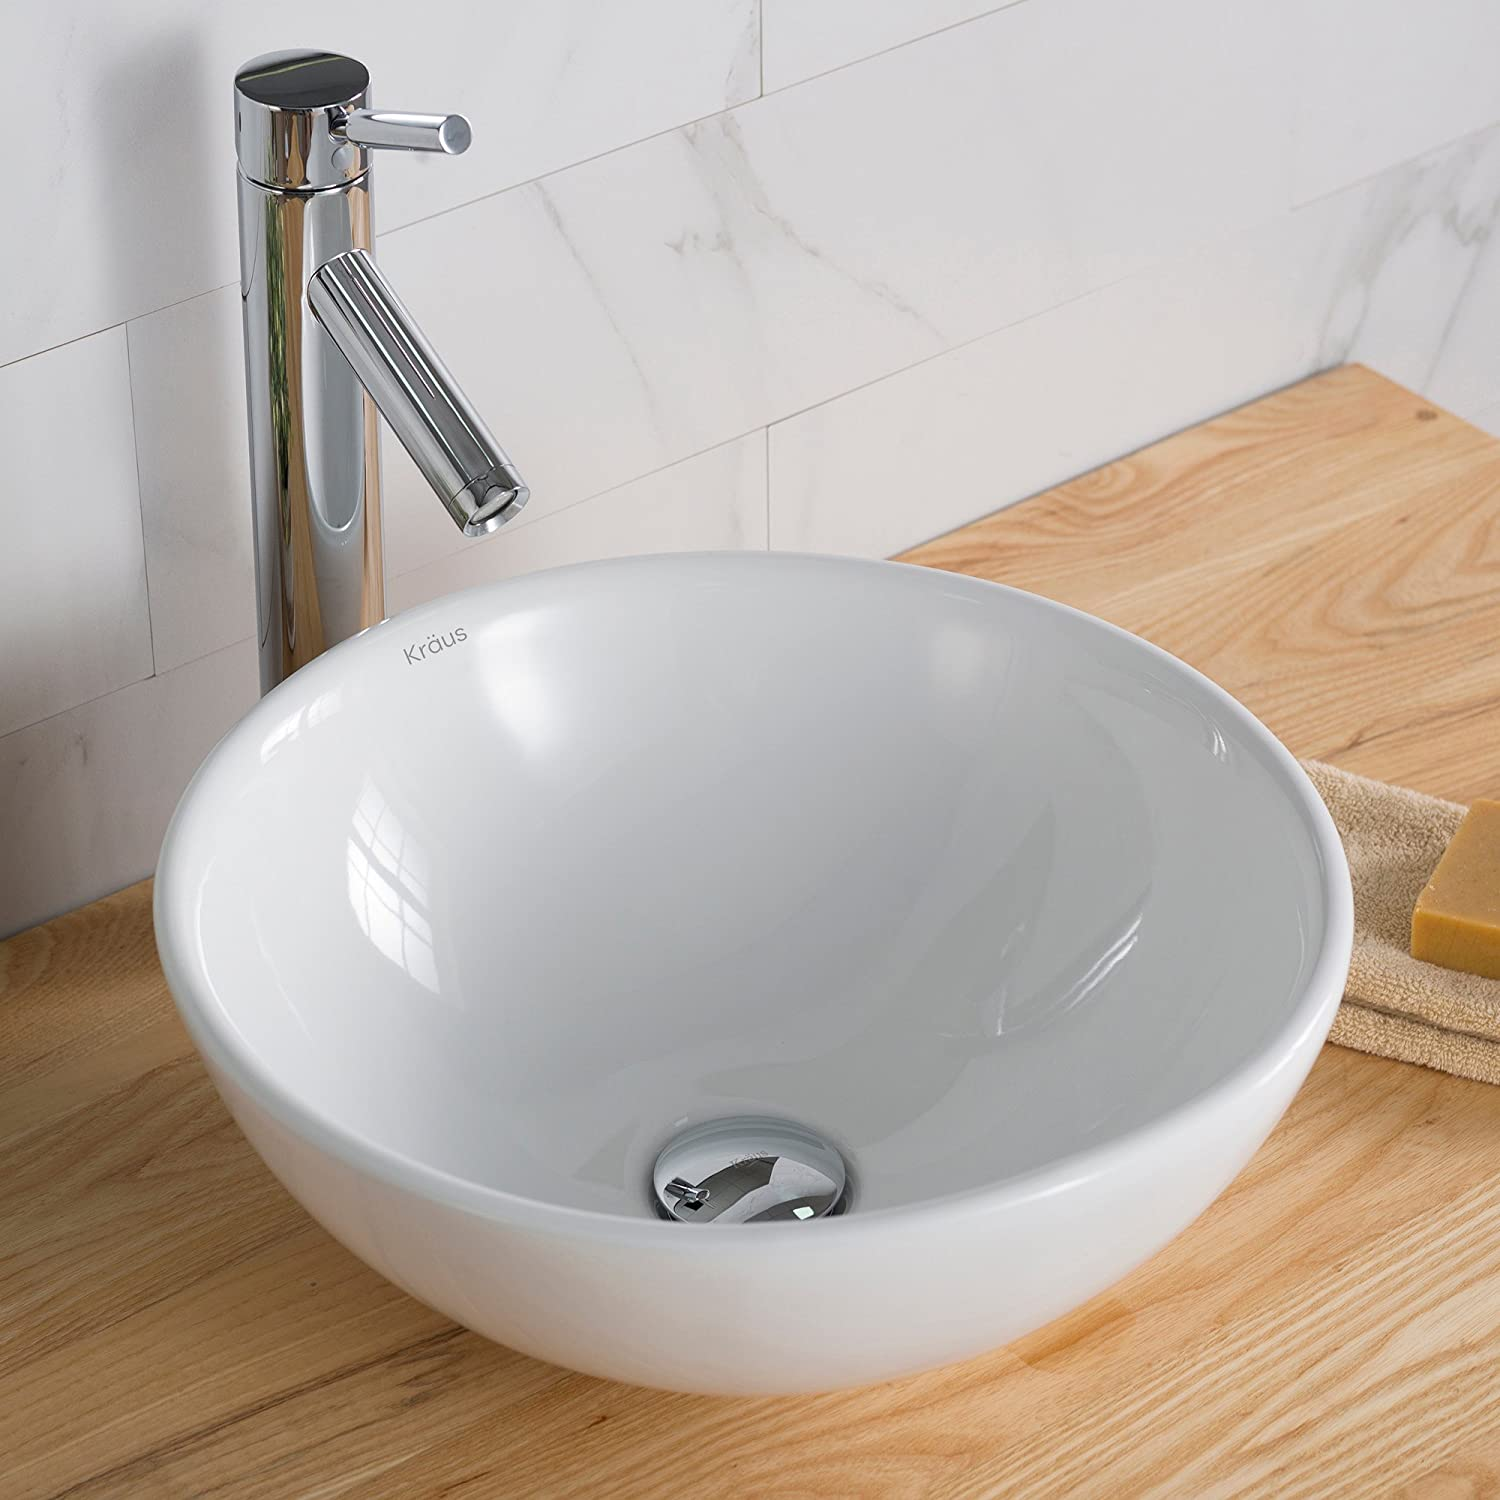 KOHLER K-19029-1-47 Escale Self-Rimming Bathroom Sink with Single-Hole Faucet Drilling, Almond